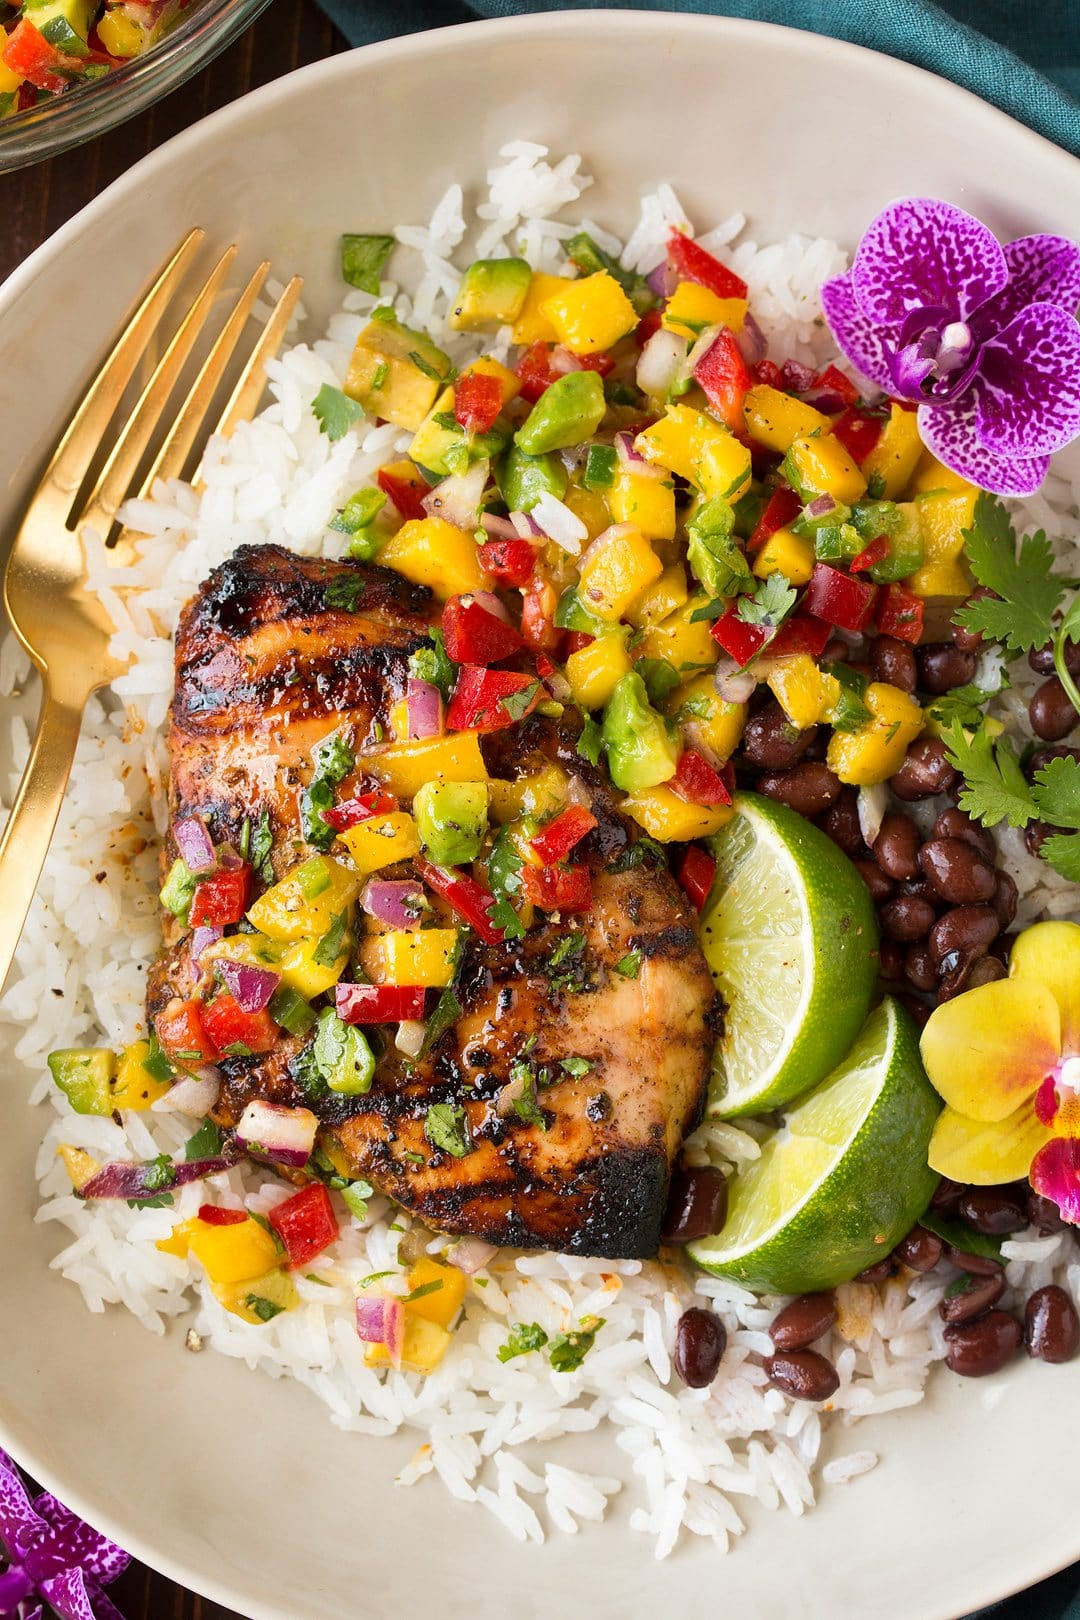 Trade traditional enchilada sauce for a creamy, cheesy topping on this Mexican chicken recipe. Your family will never know they're enjoying a lightened meal. Serve with a salad of fresh mango, jicama, and shredded lettuce topped with a lime vinaigrette.